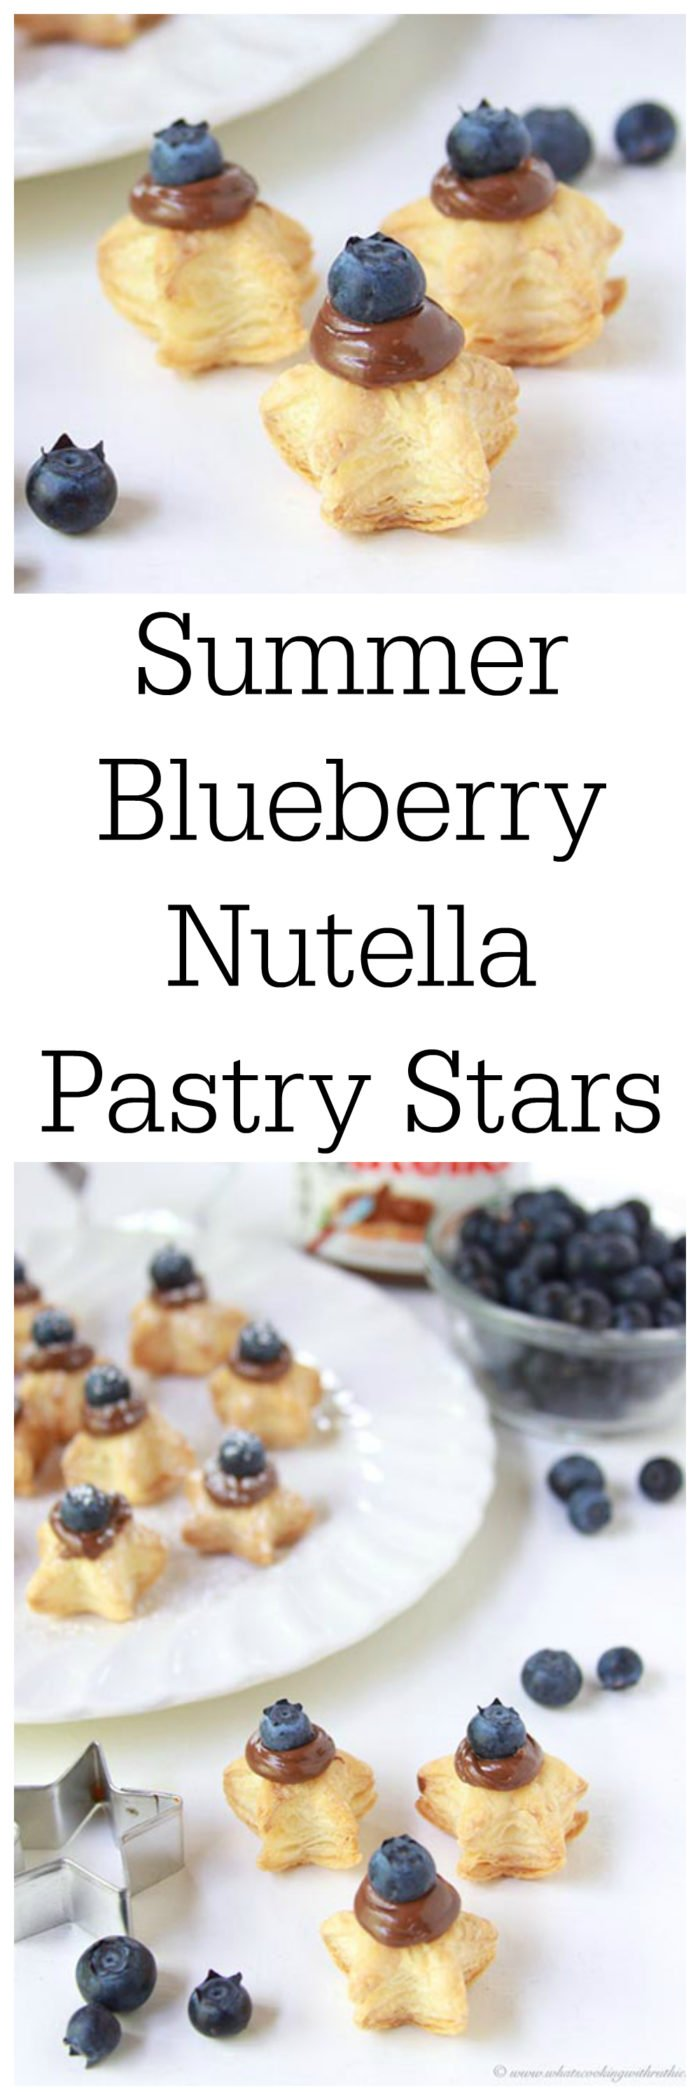 Summer Blueberry Nutella Pastry Stars on www.cookingwithruthie.com are only 3 ingredients to a fun summer brunch or dessert!